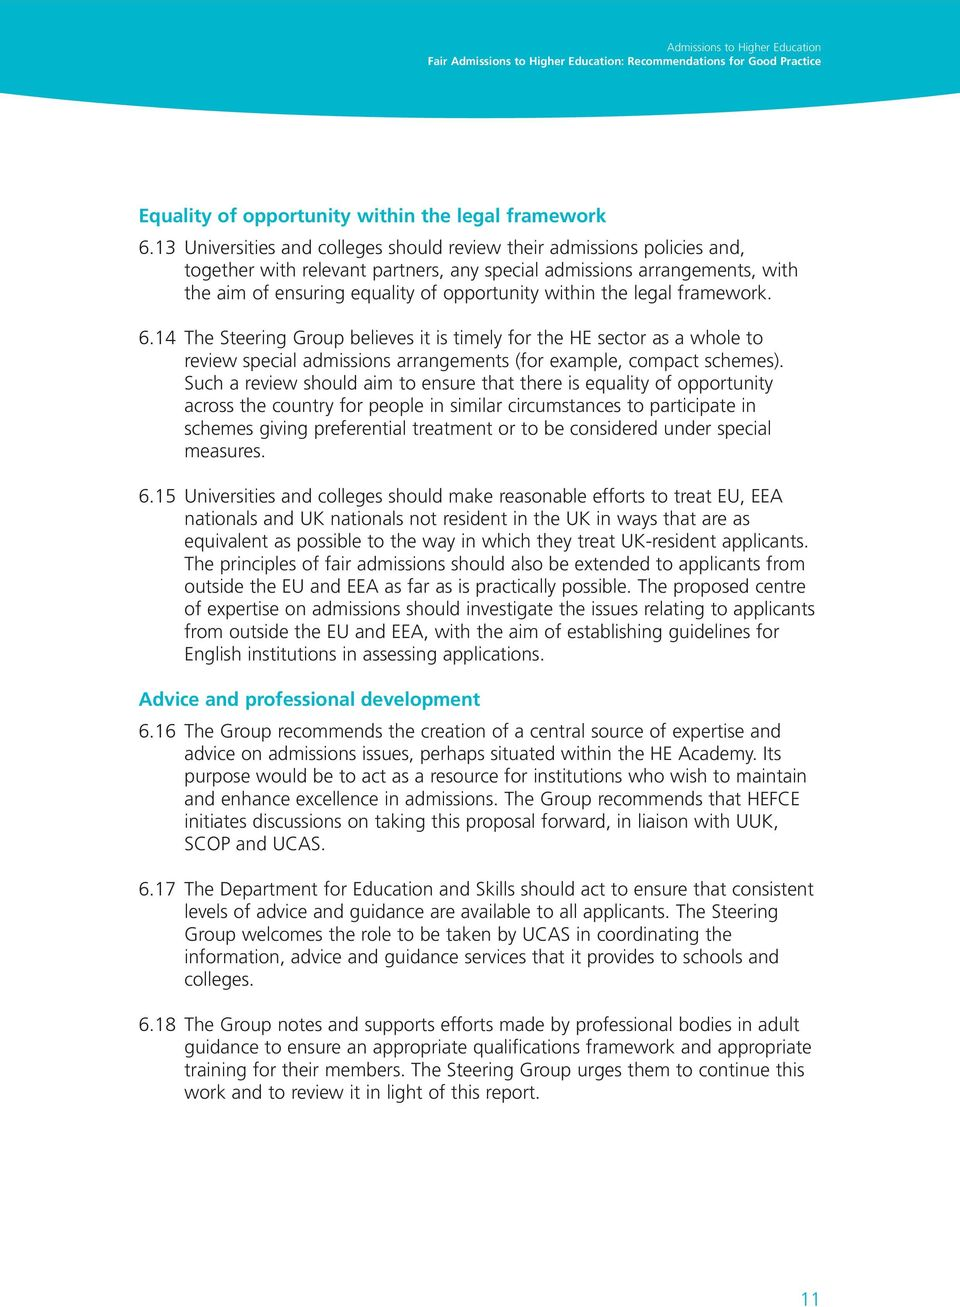 the legal framework. 6.14 The Steering Group believes it is timely for the HE sector as a whole to review special admissions arrangements (for example, compact schemes).